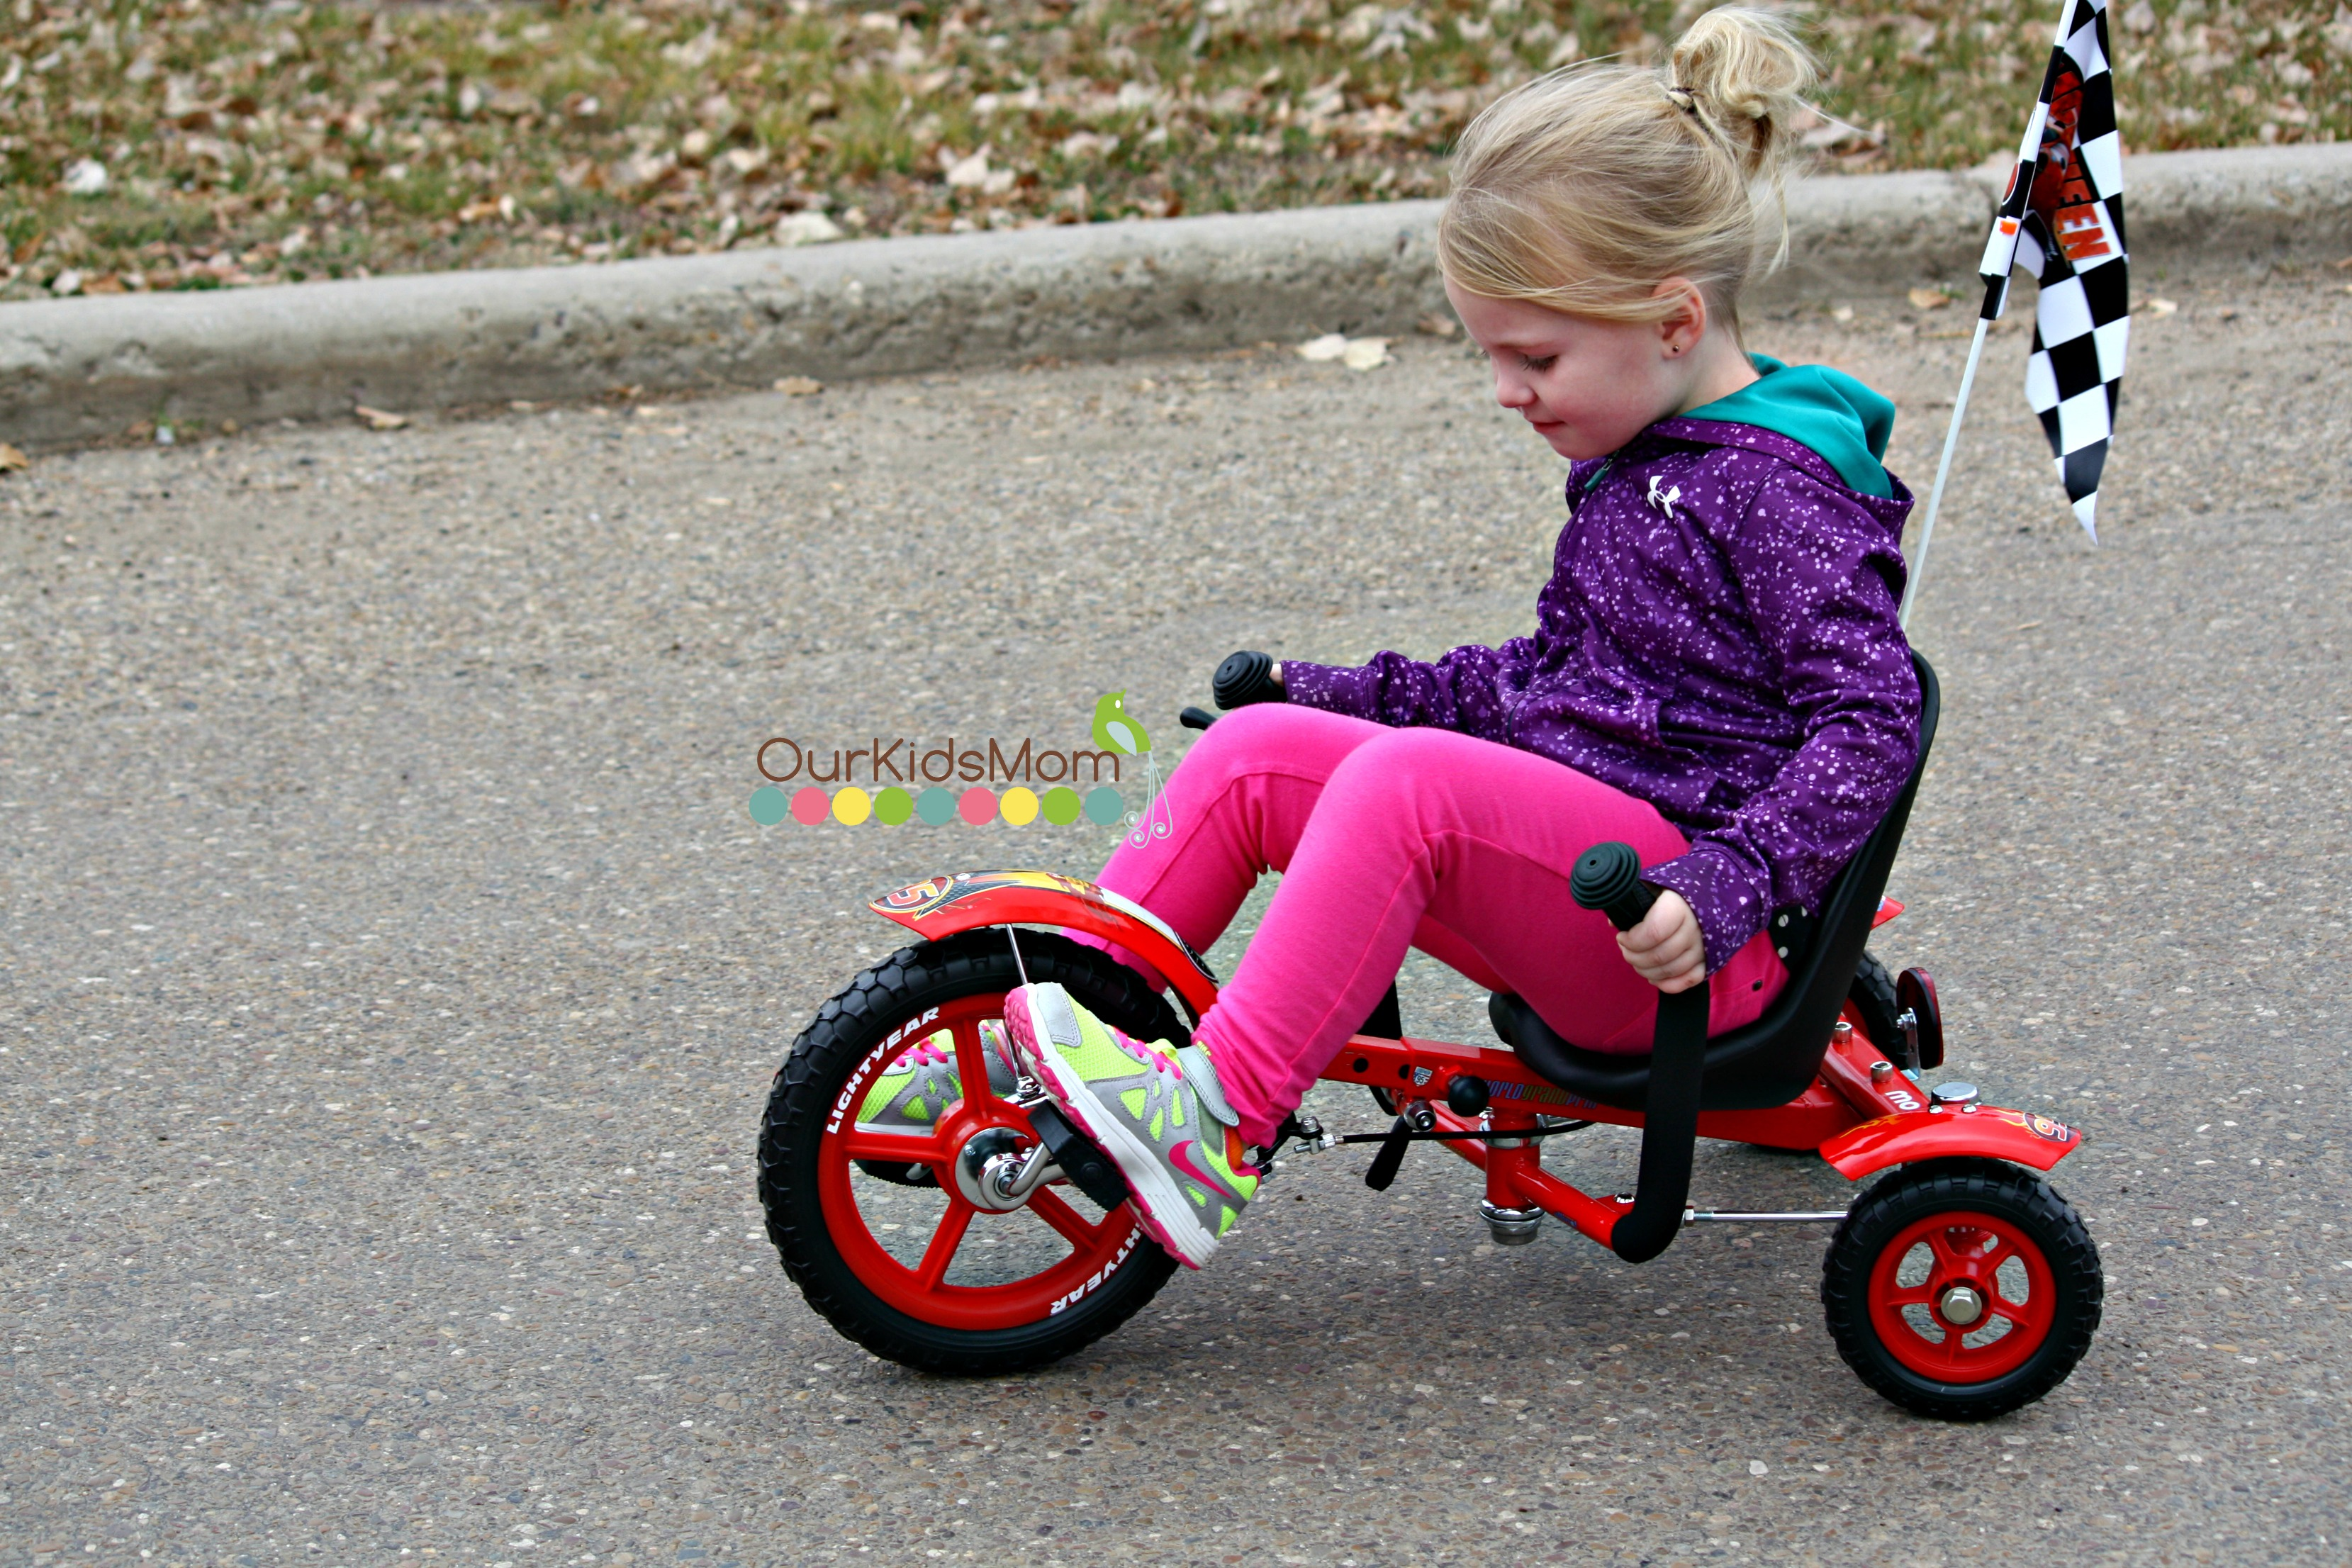 4 year old on the cruiser